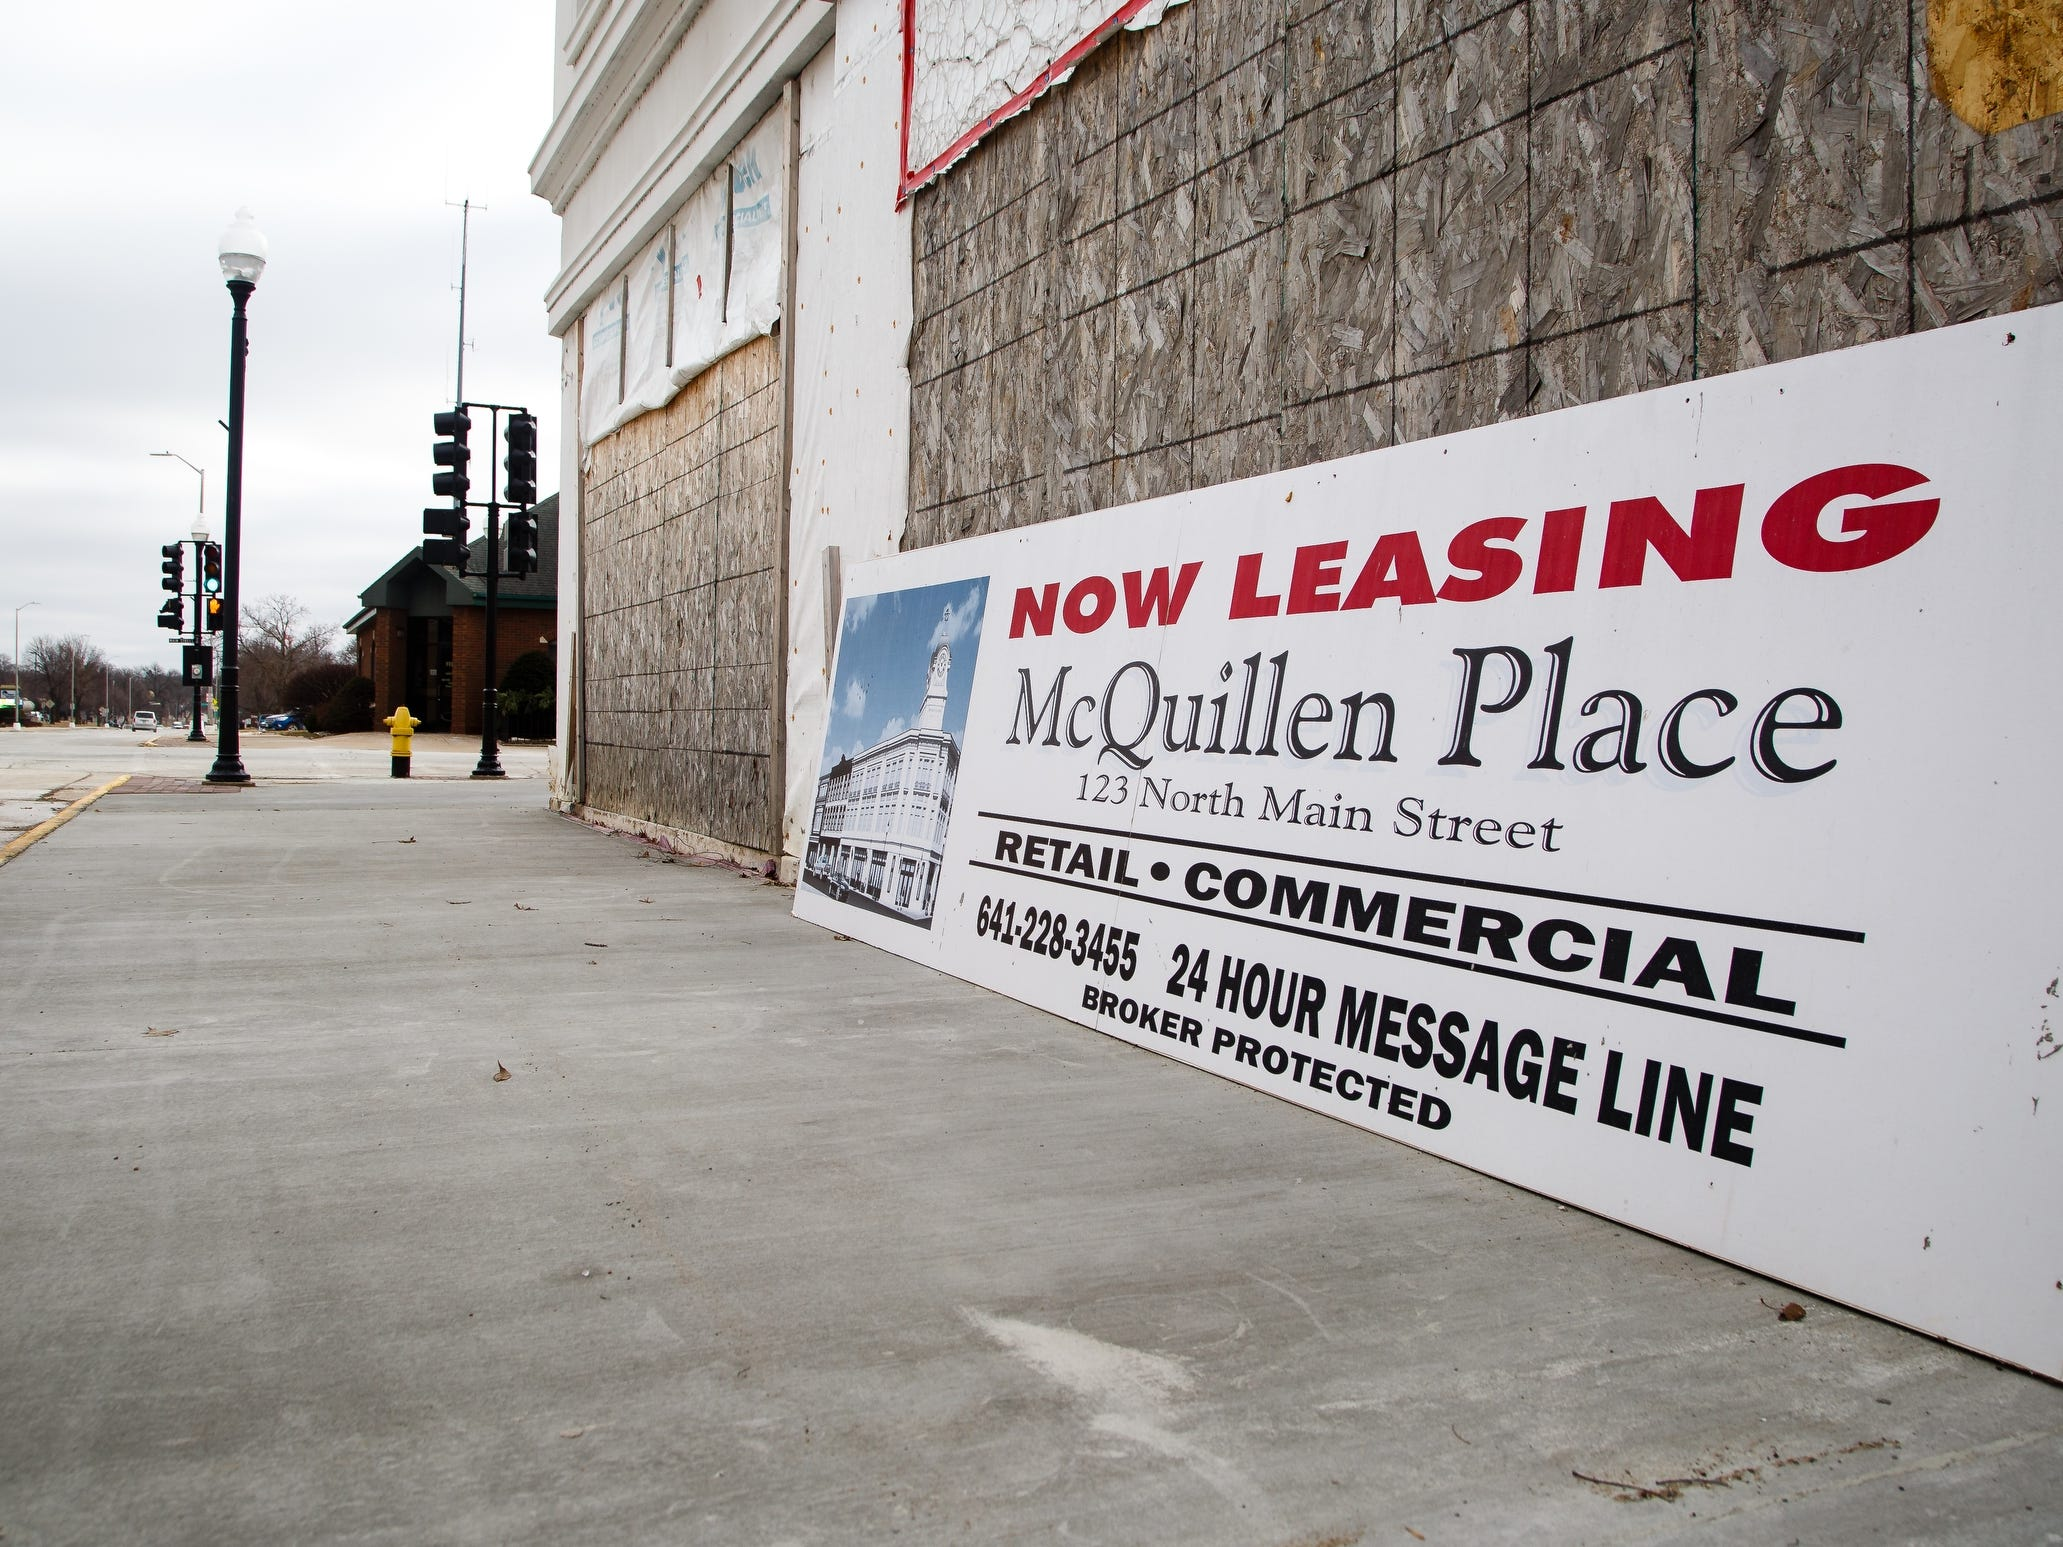 Charles Thomson tried to bring much-needed housing to downtown Charles City. His McQuillen Place sits at the town's busiest intersection and was built over an empty lot. The project includes one floor of Main Street retail space and two floors of apartments, sits nearly completed, but Thomson fears it may never be completed. His complex financing package included about $700,000 in tax credits from the Iowa Economic Development Authority.  That's only a small share of the $10 million project, but the state's backing was crucial in receiving bank financing. Thomson claims the state suddenly reneged on its offer and told him he missed an arbitrary deadline to cash in the credits. With that funding gone, the bank called its loan and began foreclosure on the building.